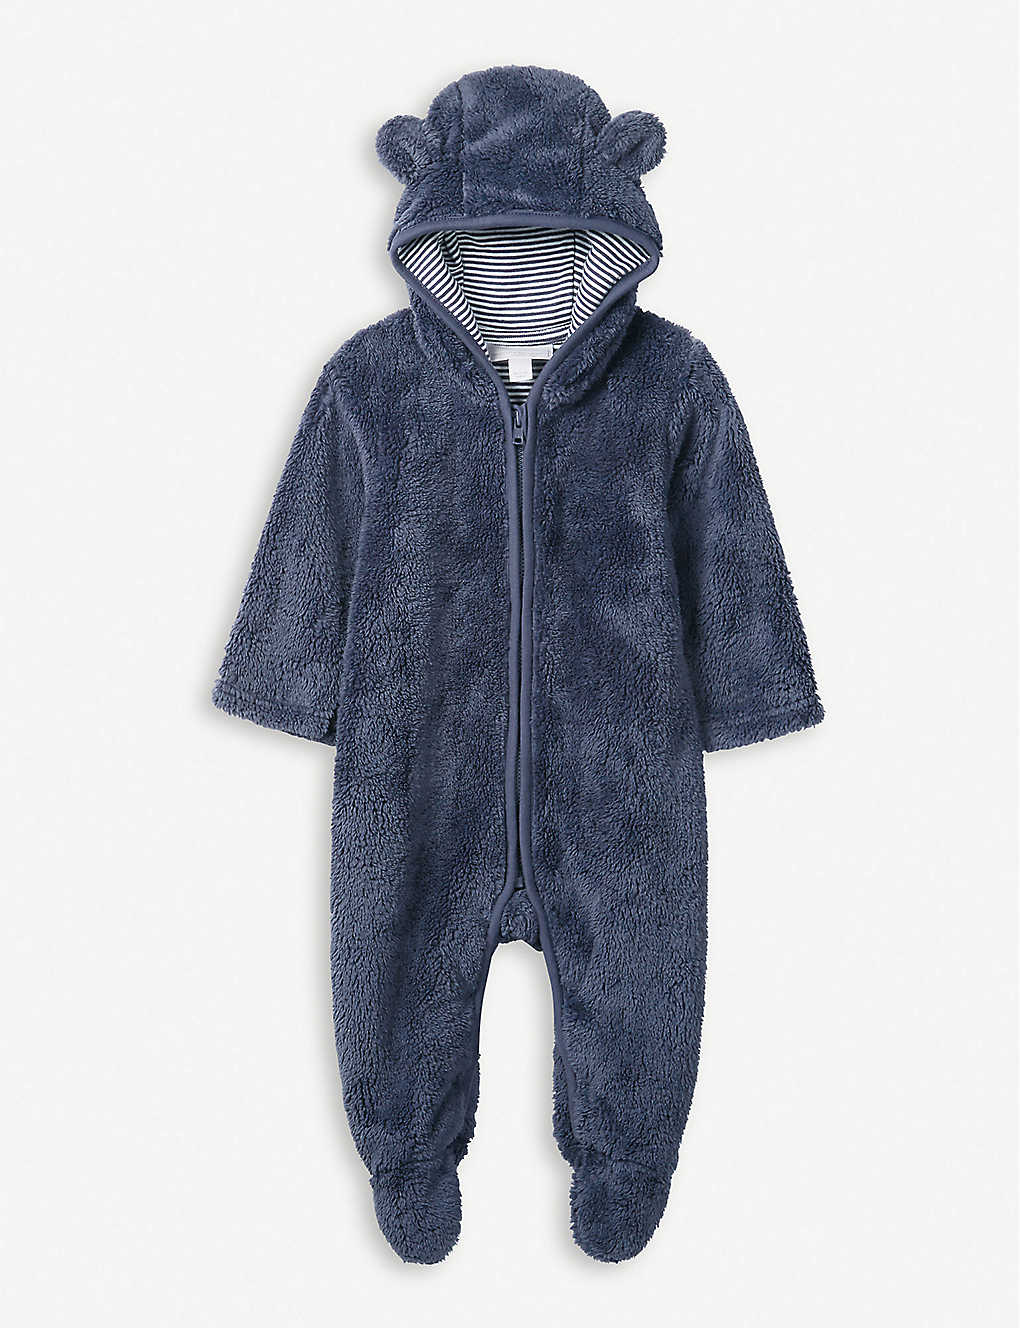 THE LITTLE WHITE COMPANY: Bear ears fleece romper 0-24 months